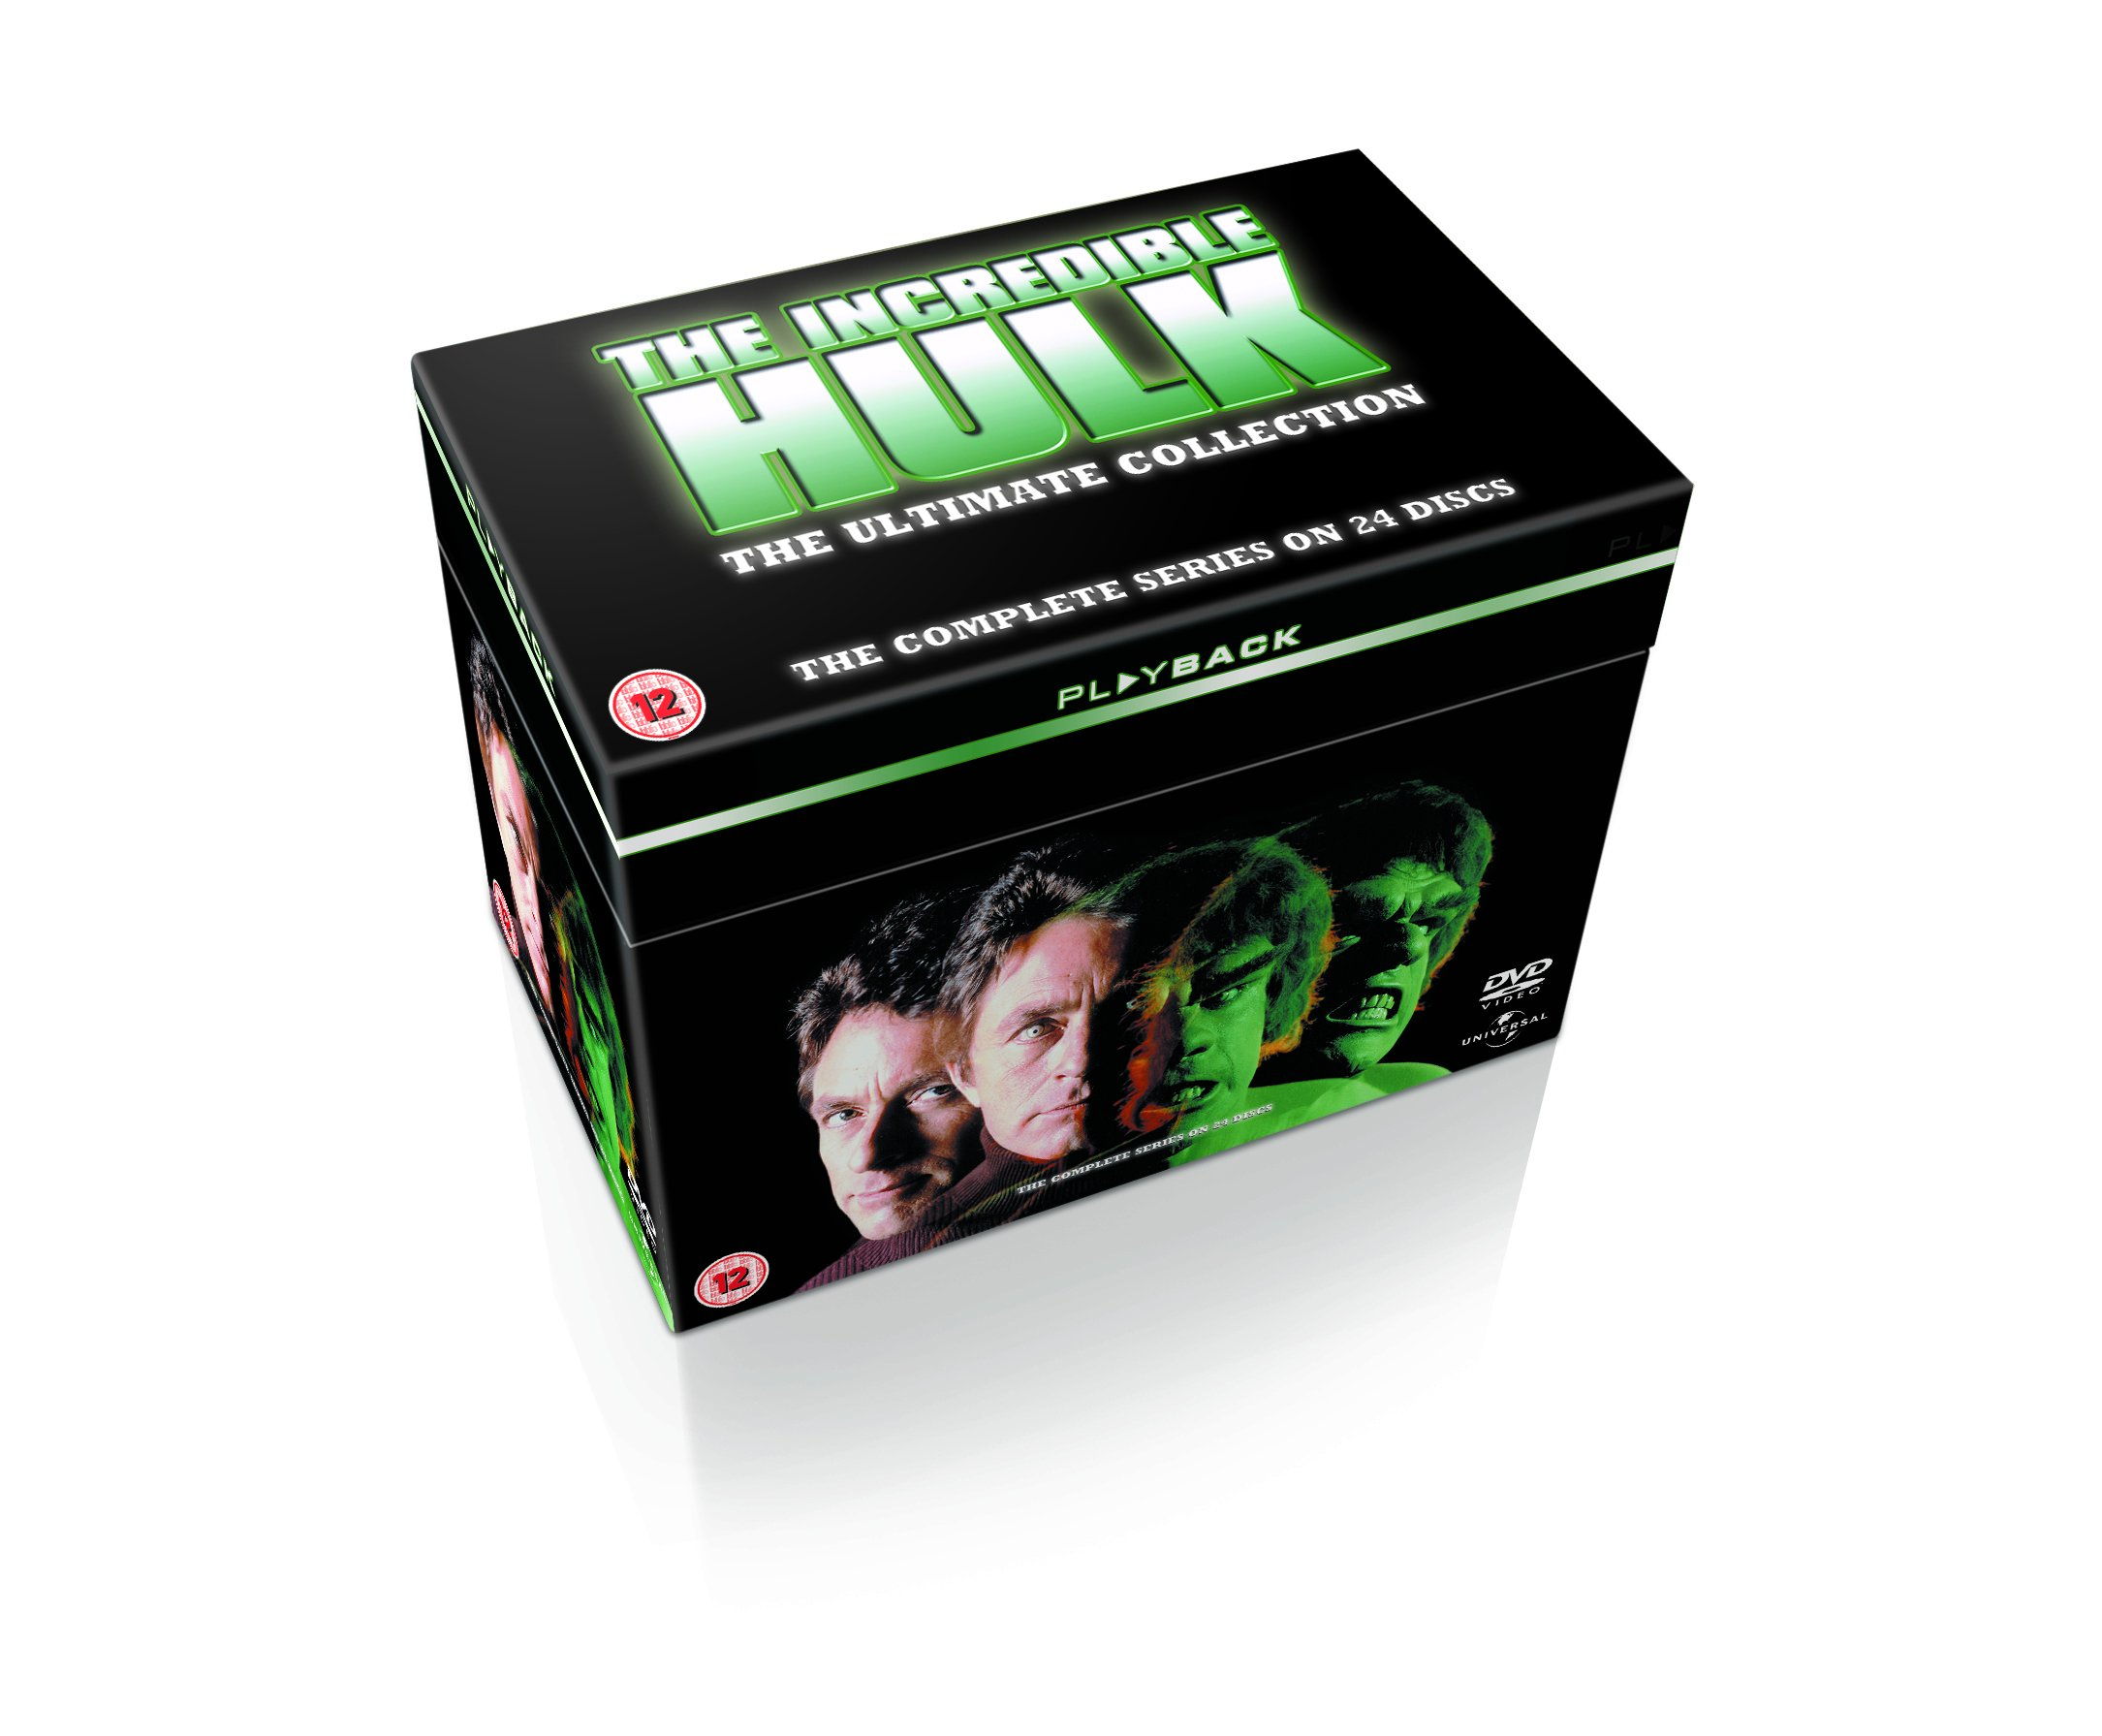 The Incredible Hulk: The Complete Seasons